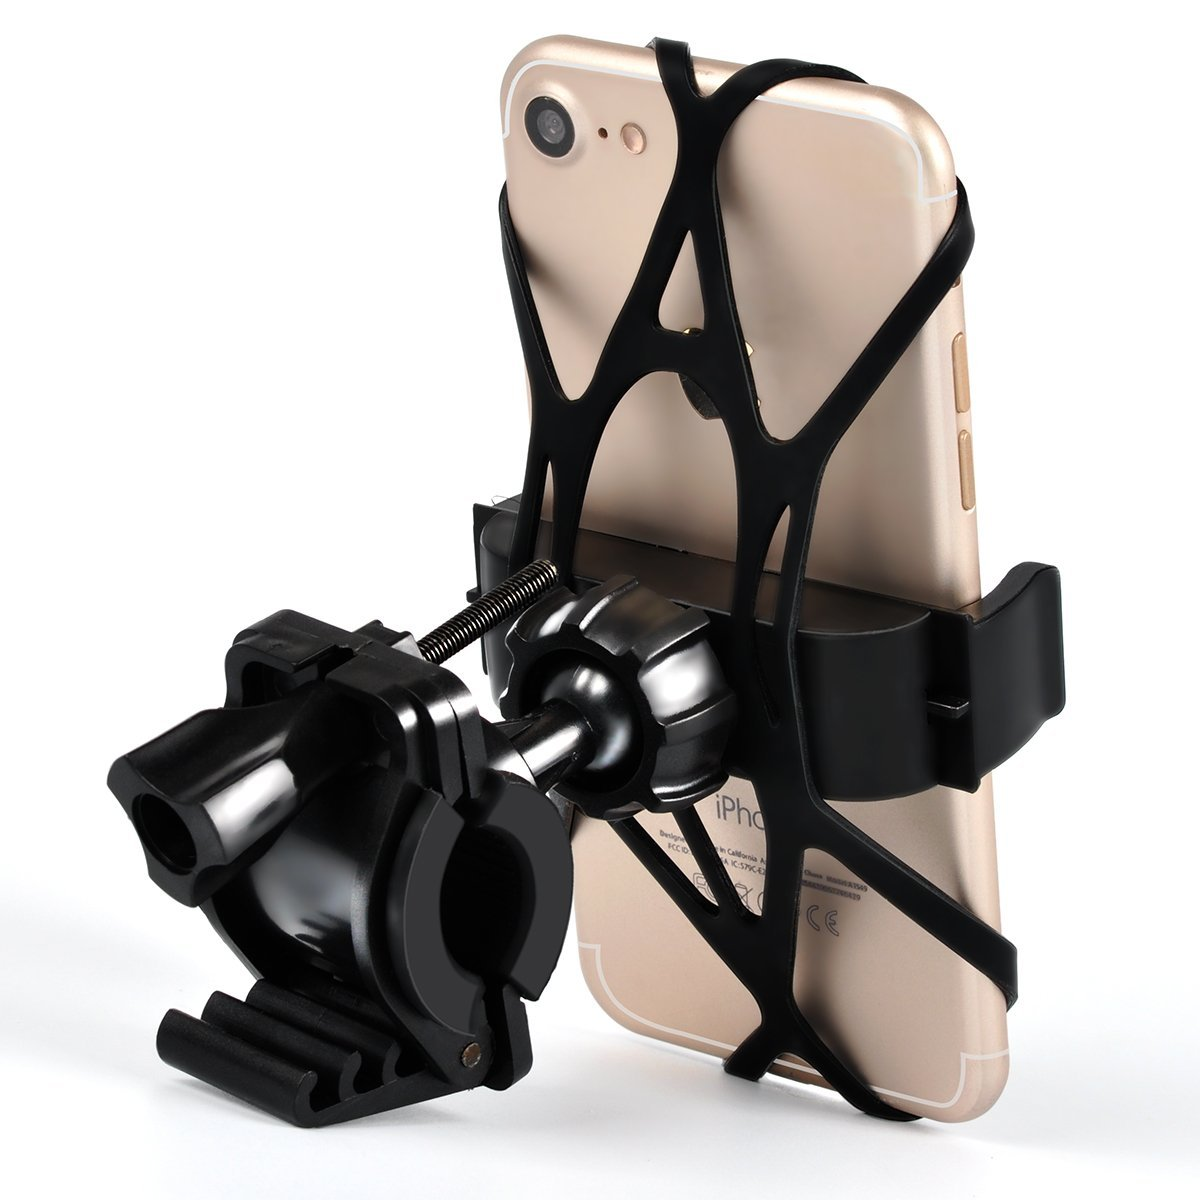 Universal Bike Phone Mount Motorcycle Handlebar Mount Bicycle Phone Holder Silicone Support Band 4-6.0 inches Phones Other Devices (Black) Cornmi